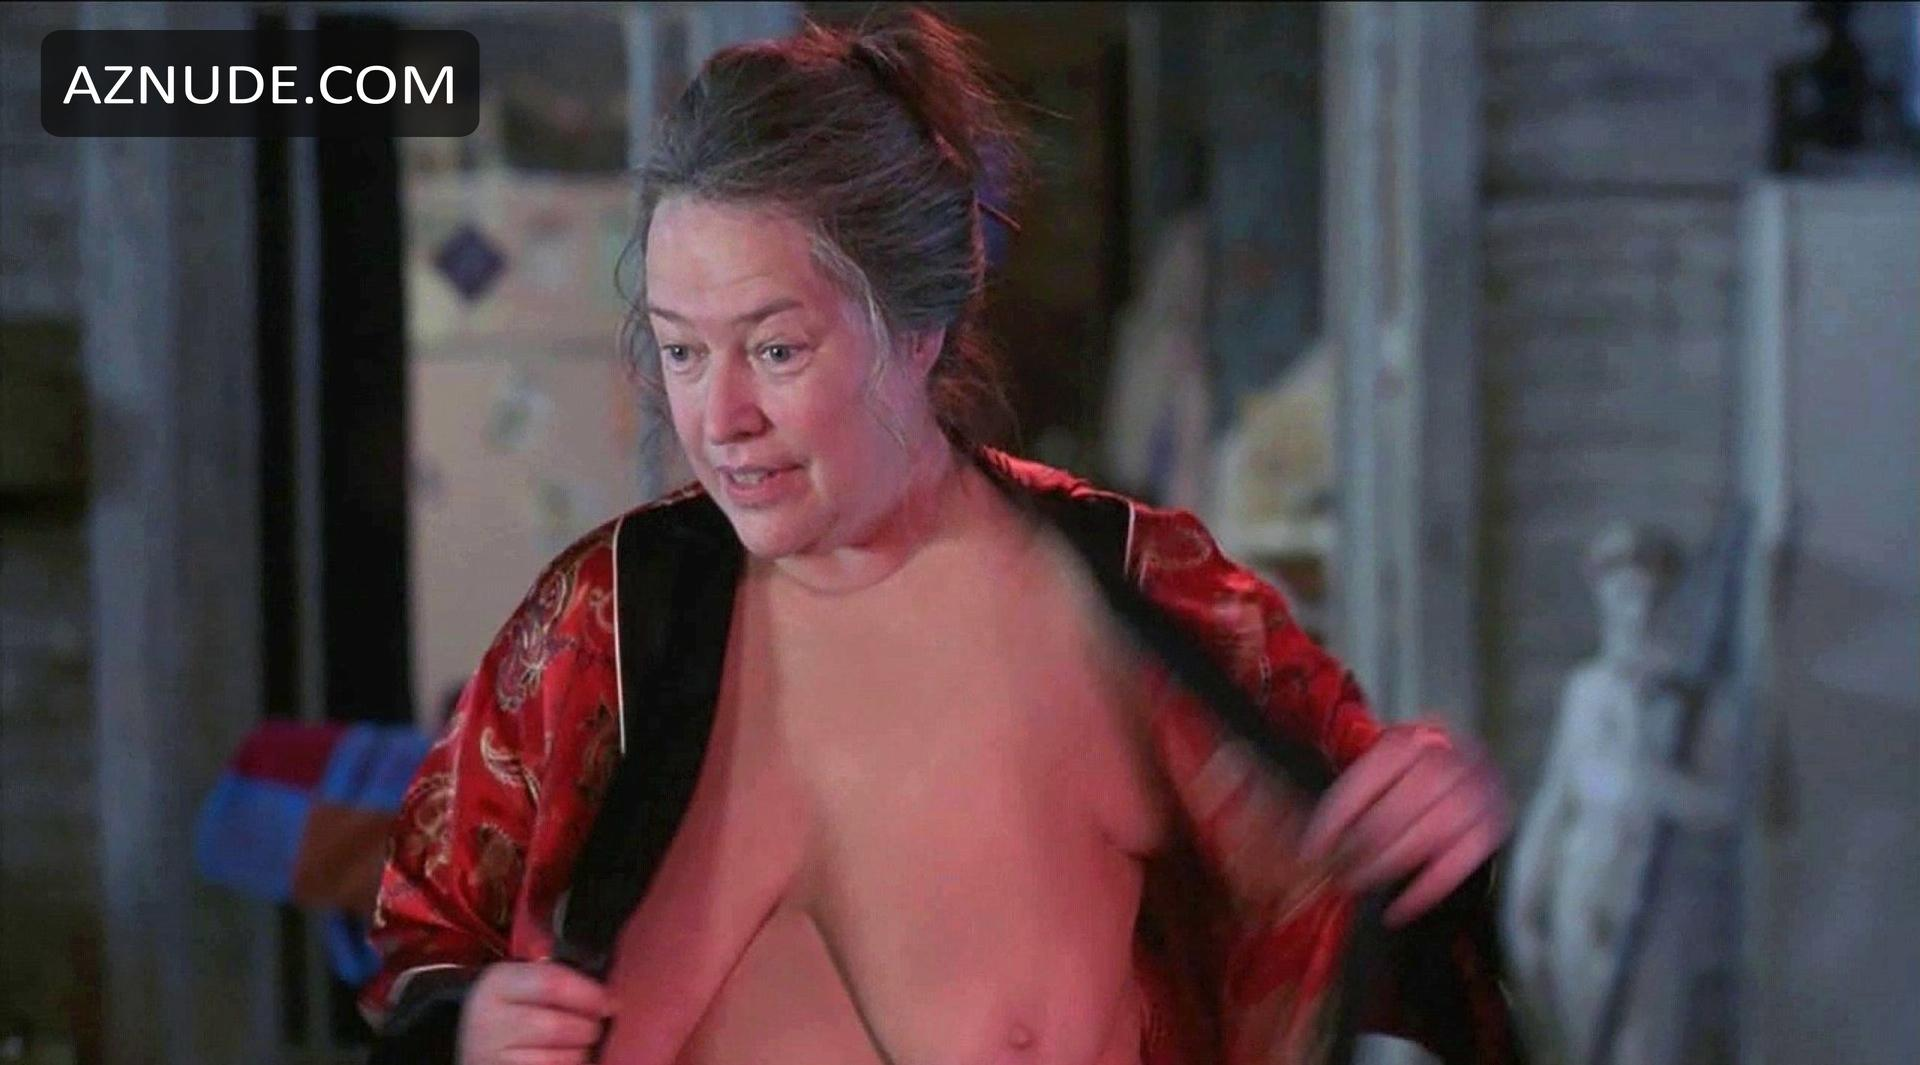 About schmidt kathy bates nude apologise, but